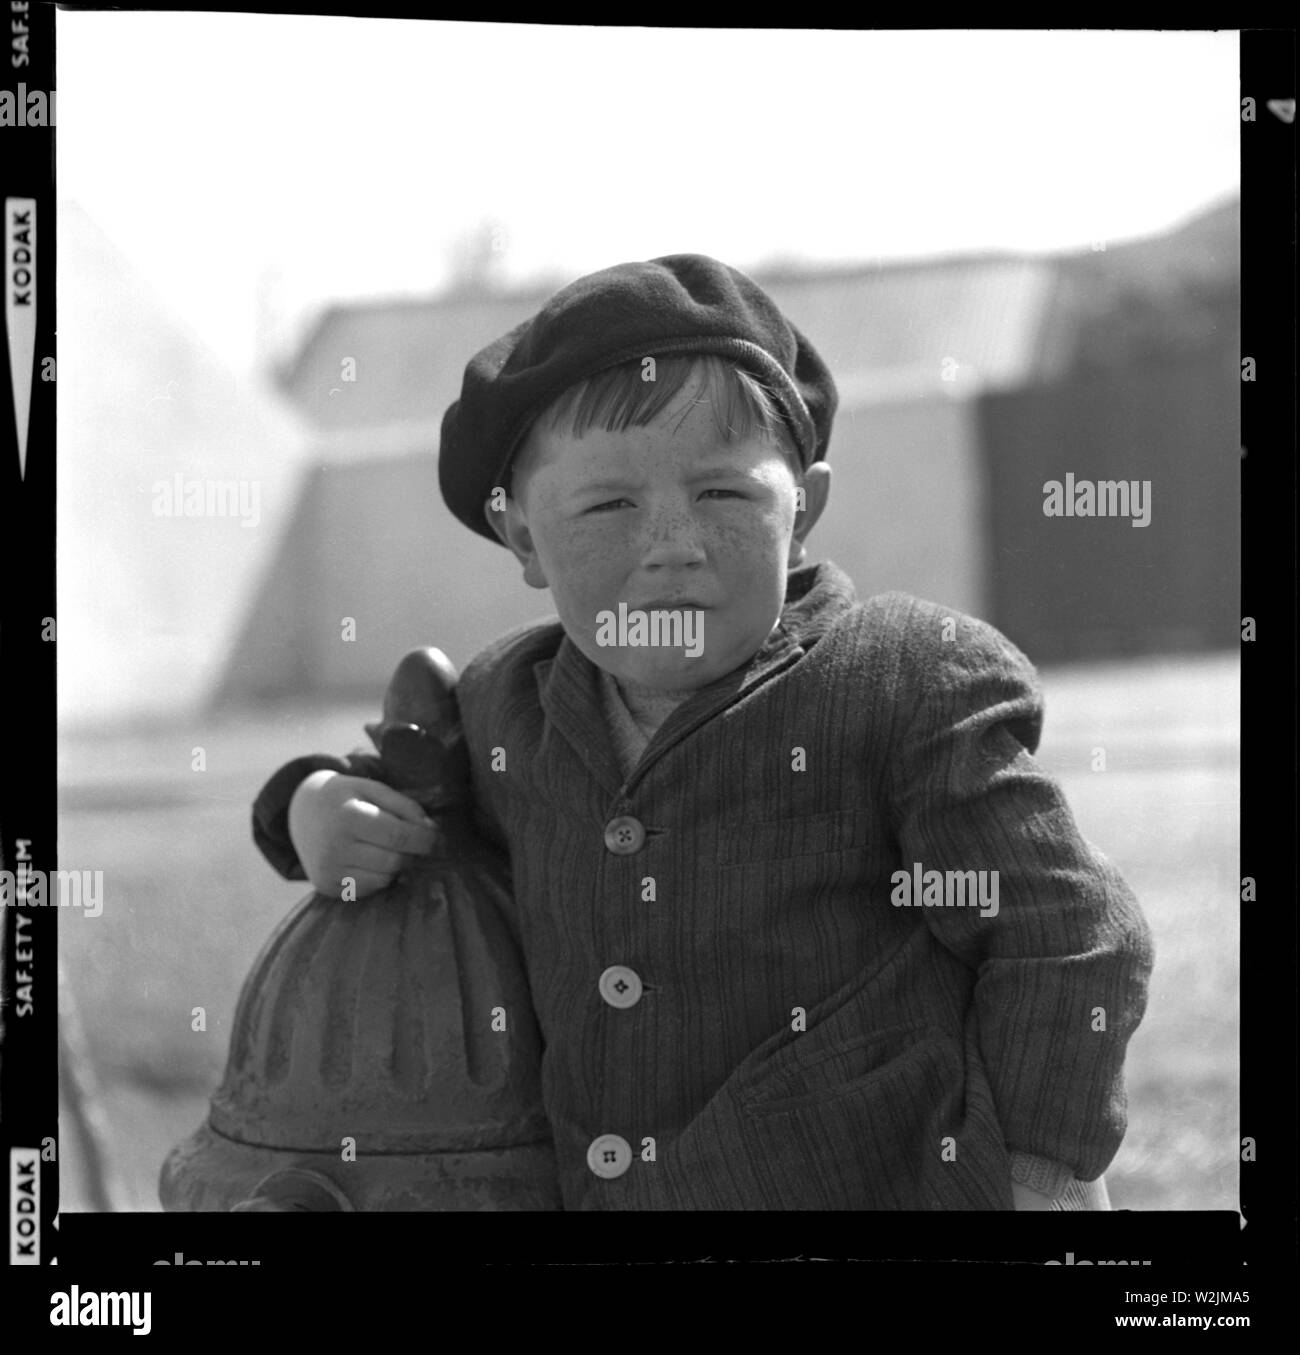 A telling portrait of a young boy, probably near the Sandyford area in Dublin, Ireland c1960. Note the three different buttons on his jacket and jaunty beret. Photo by Tony Henshaw - Stock Image